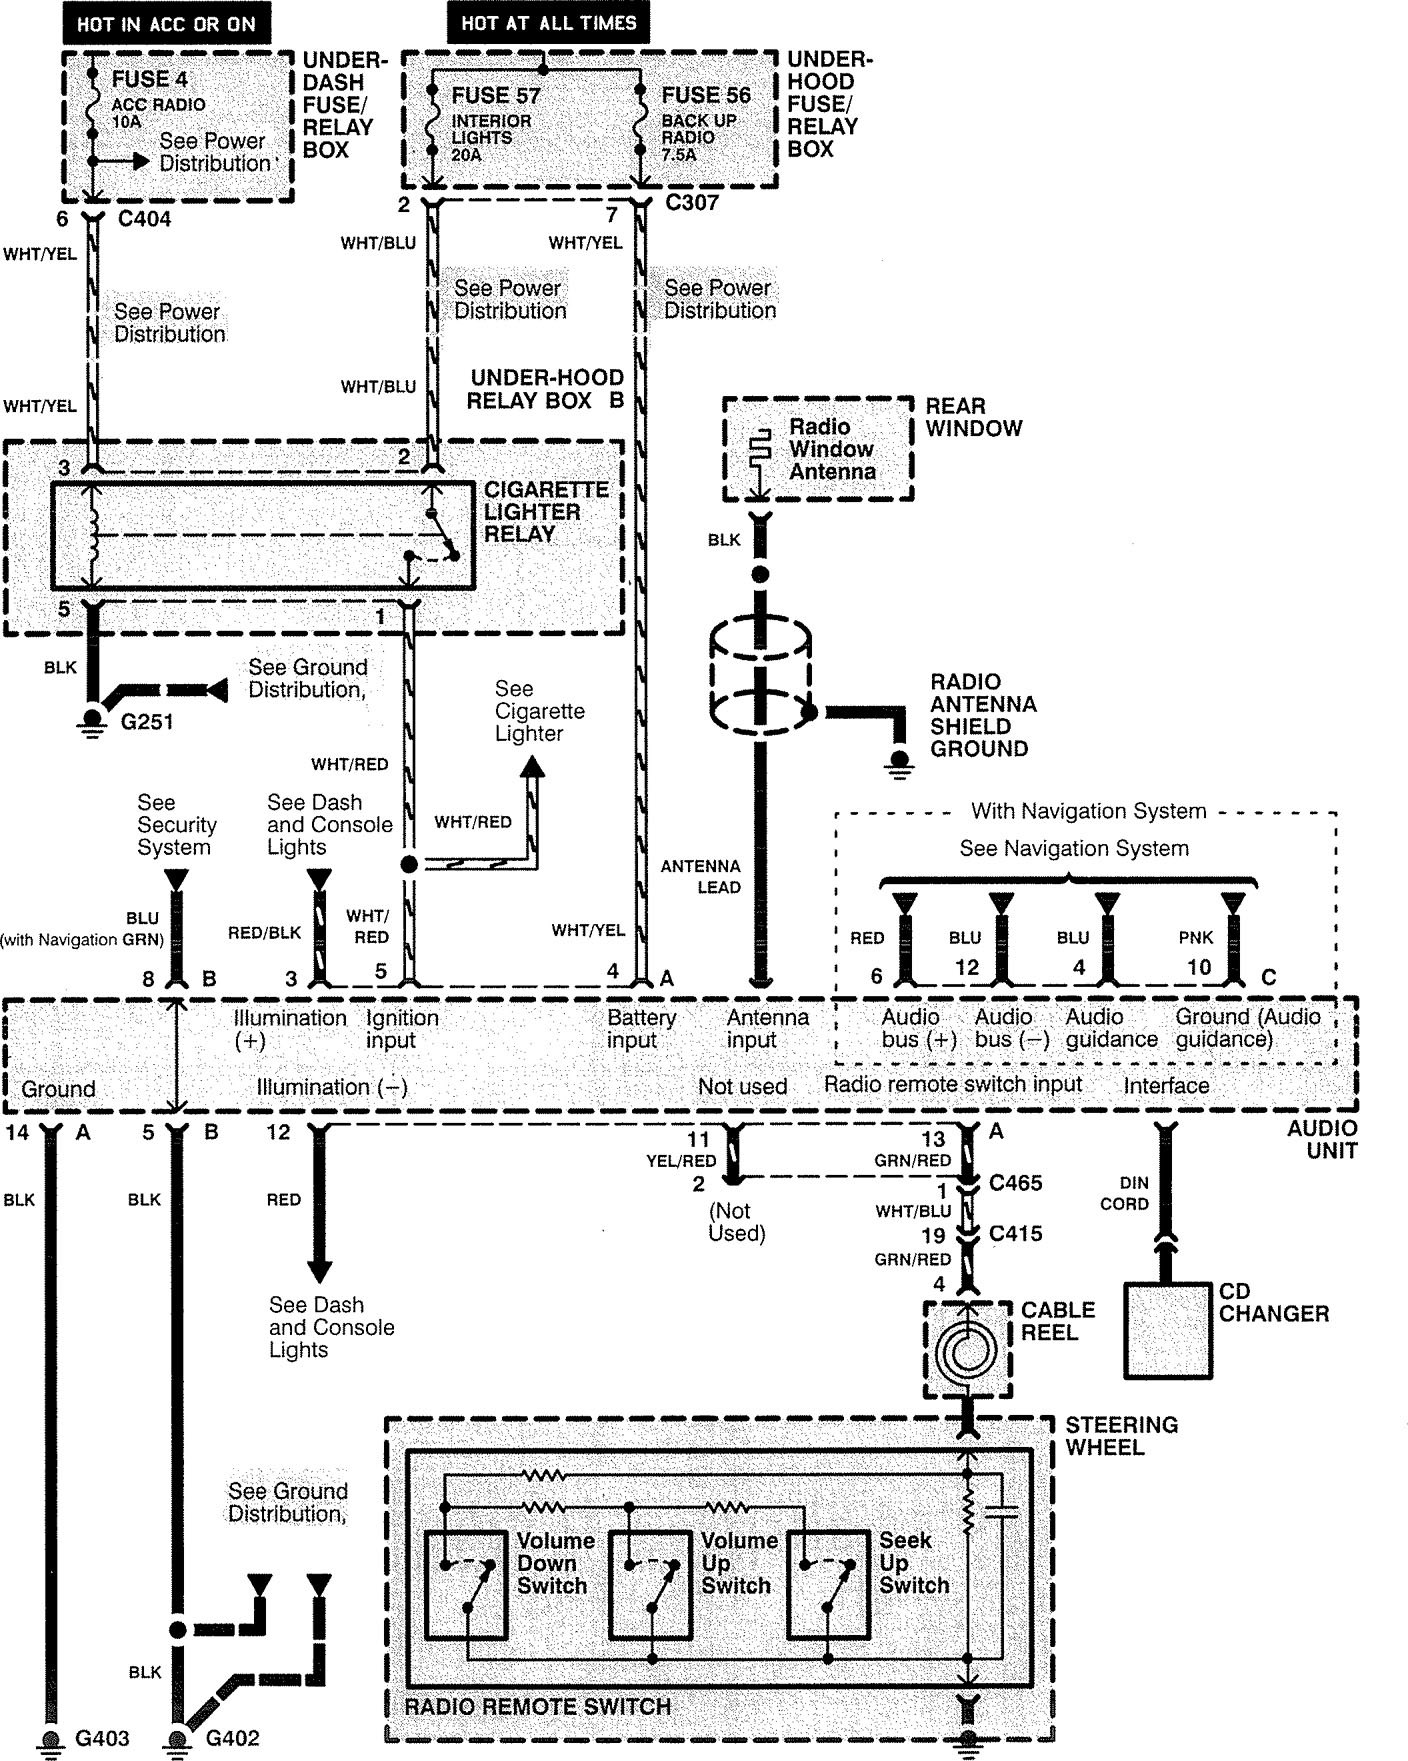 Acura rl 1996 1997 wiring diagrams audio carknowledge